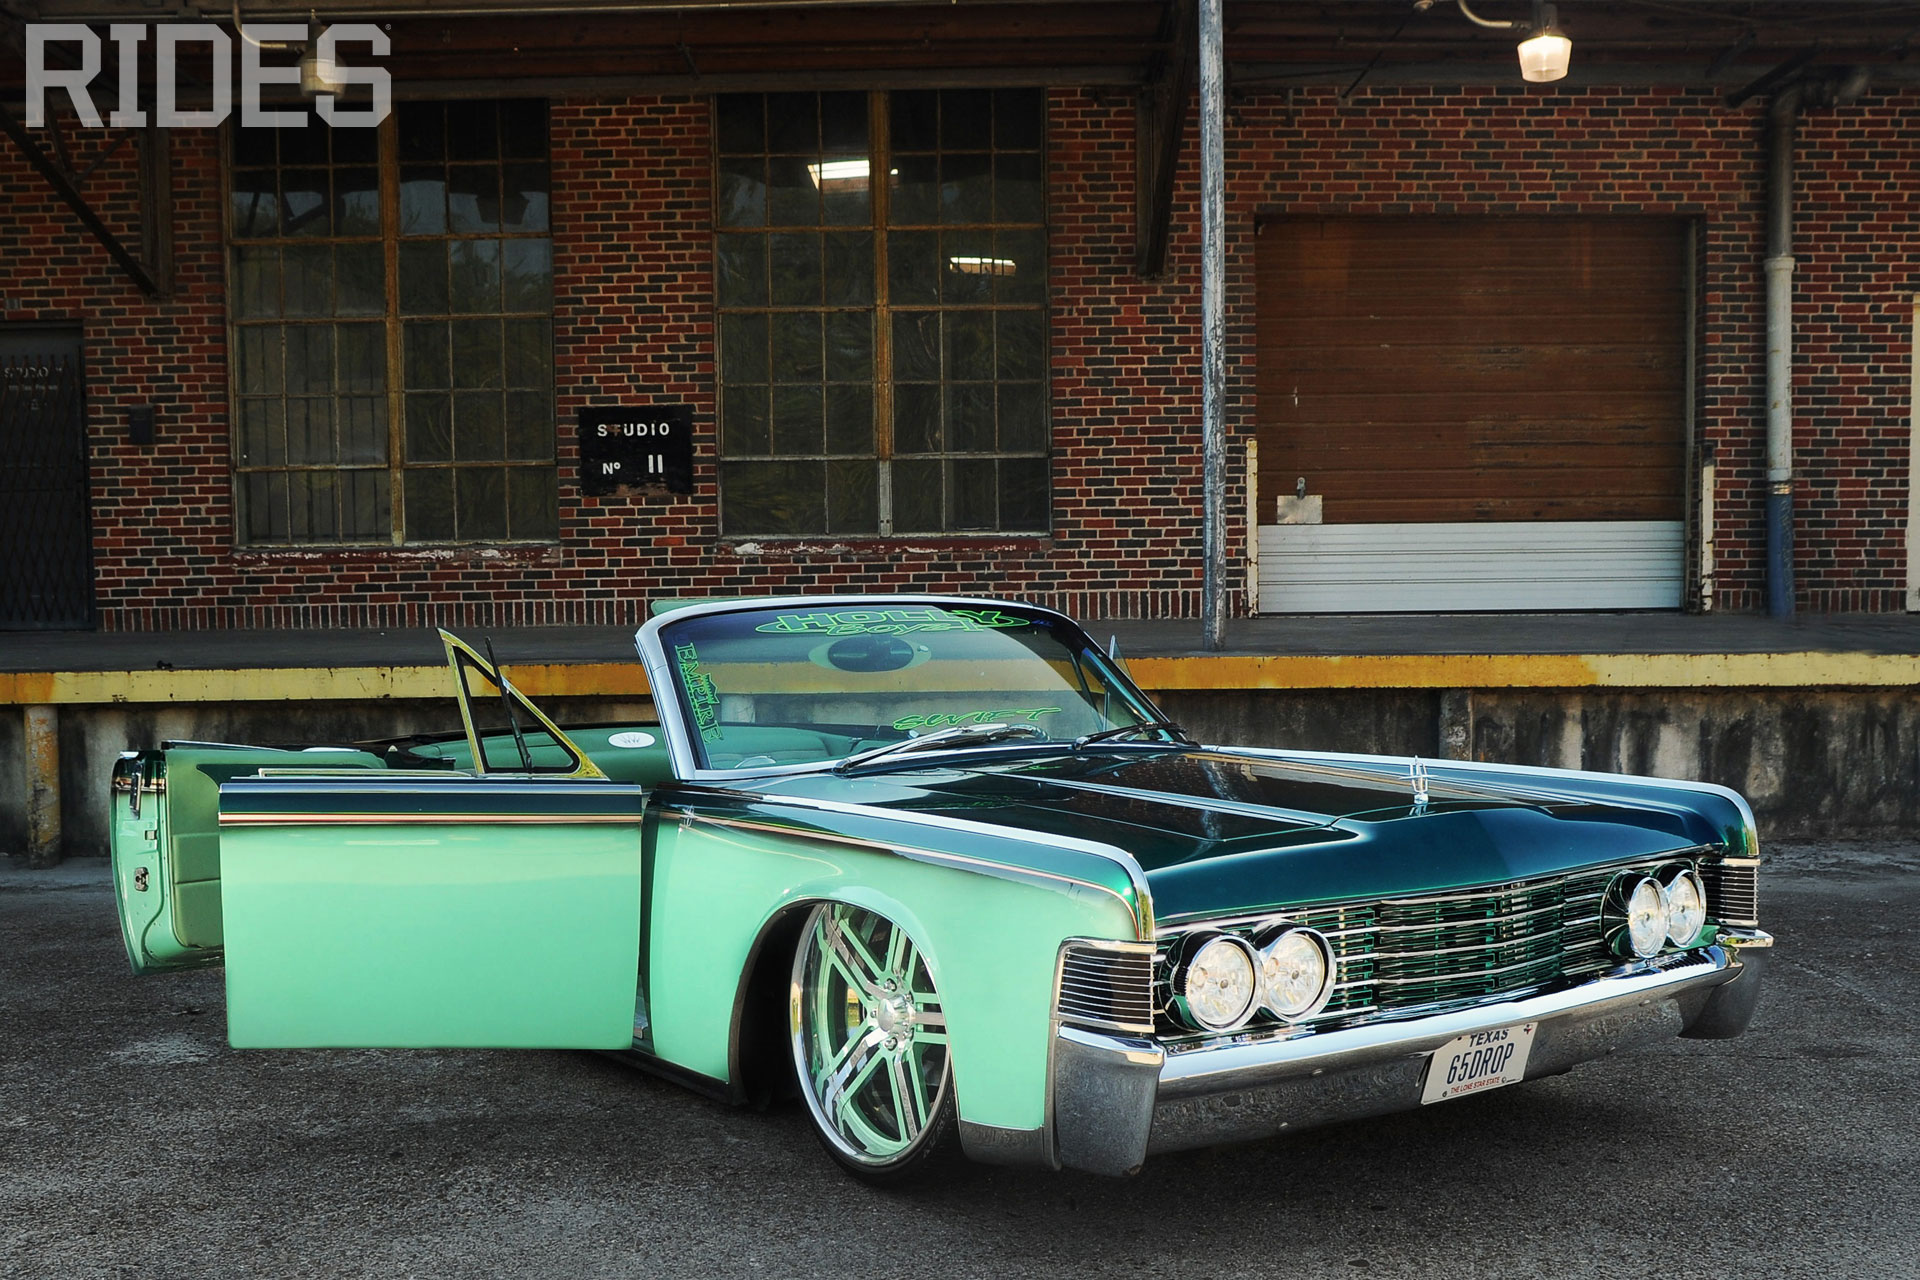 65 Lincoln Continental Rides Magazine